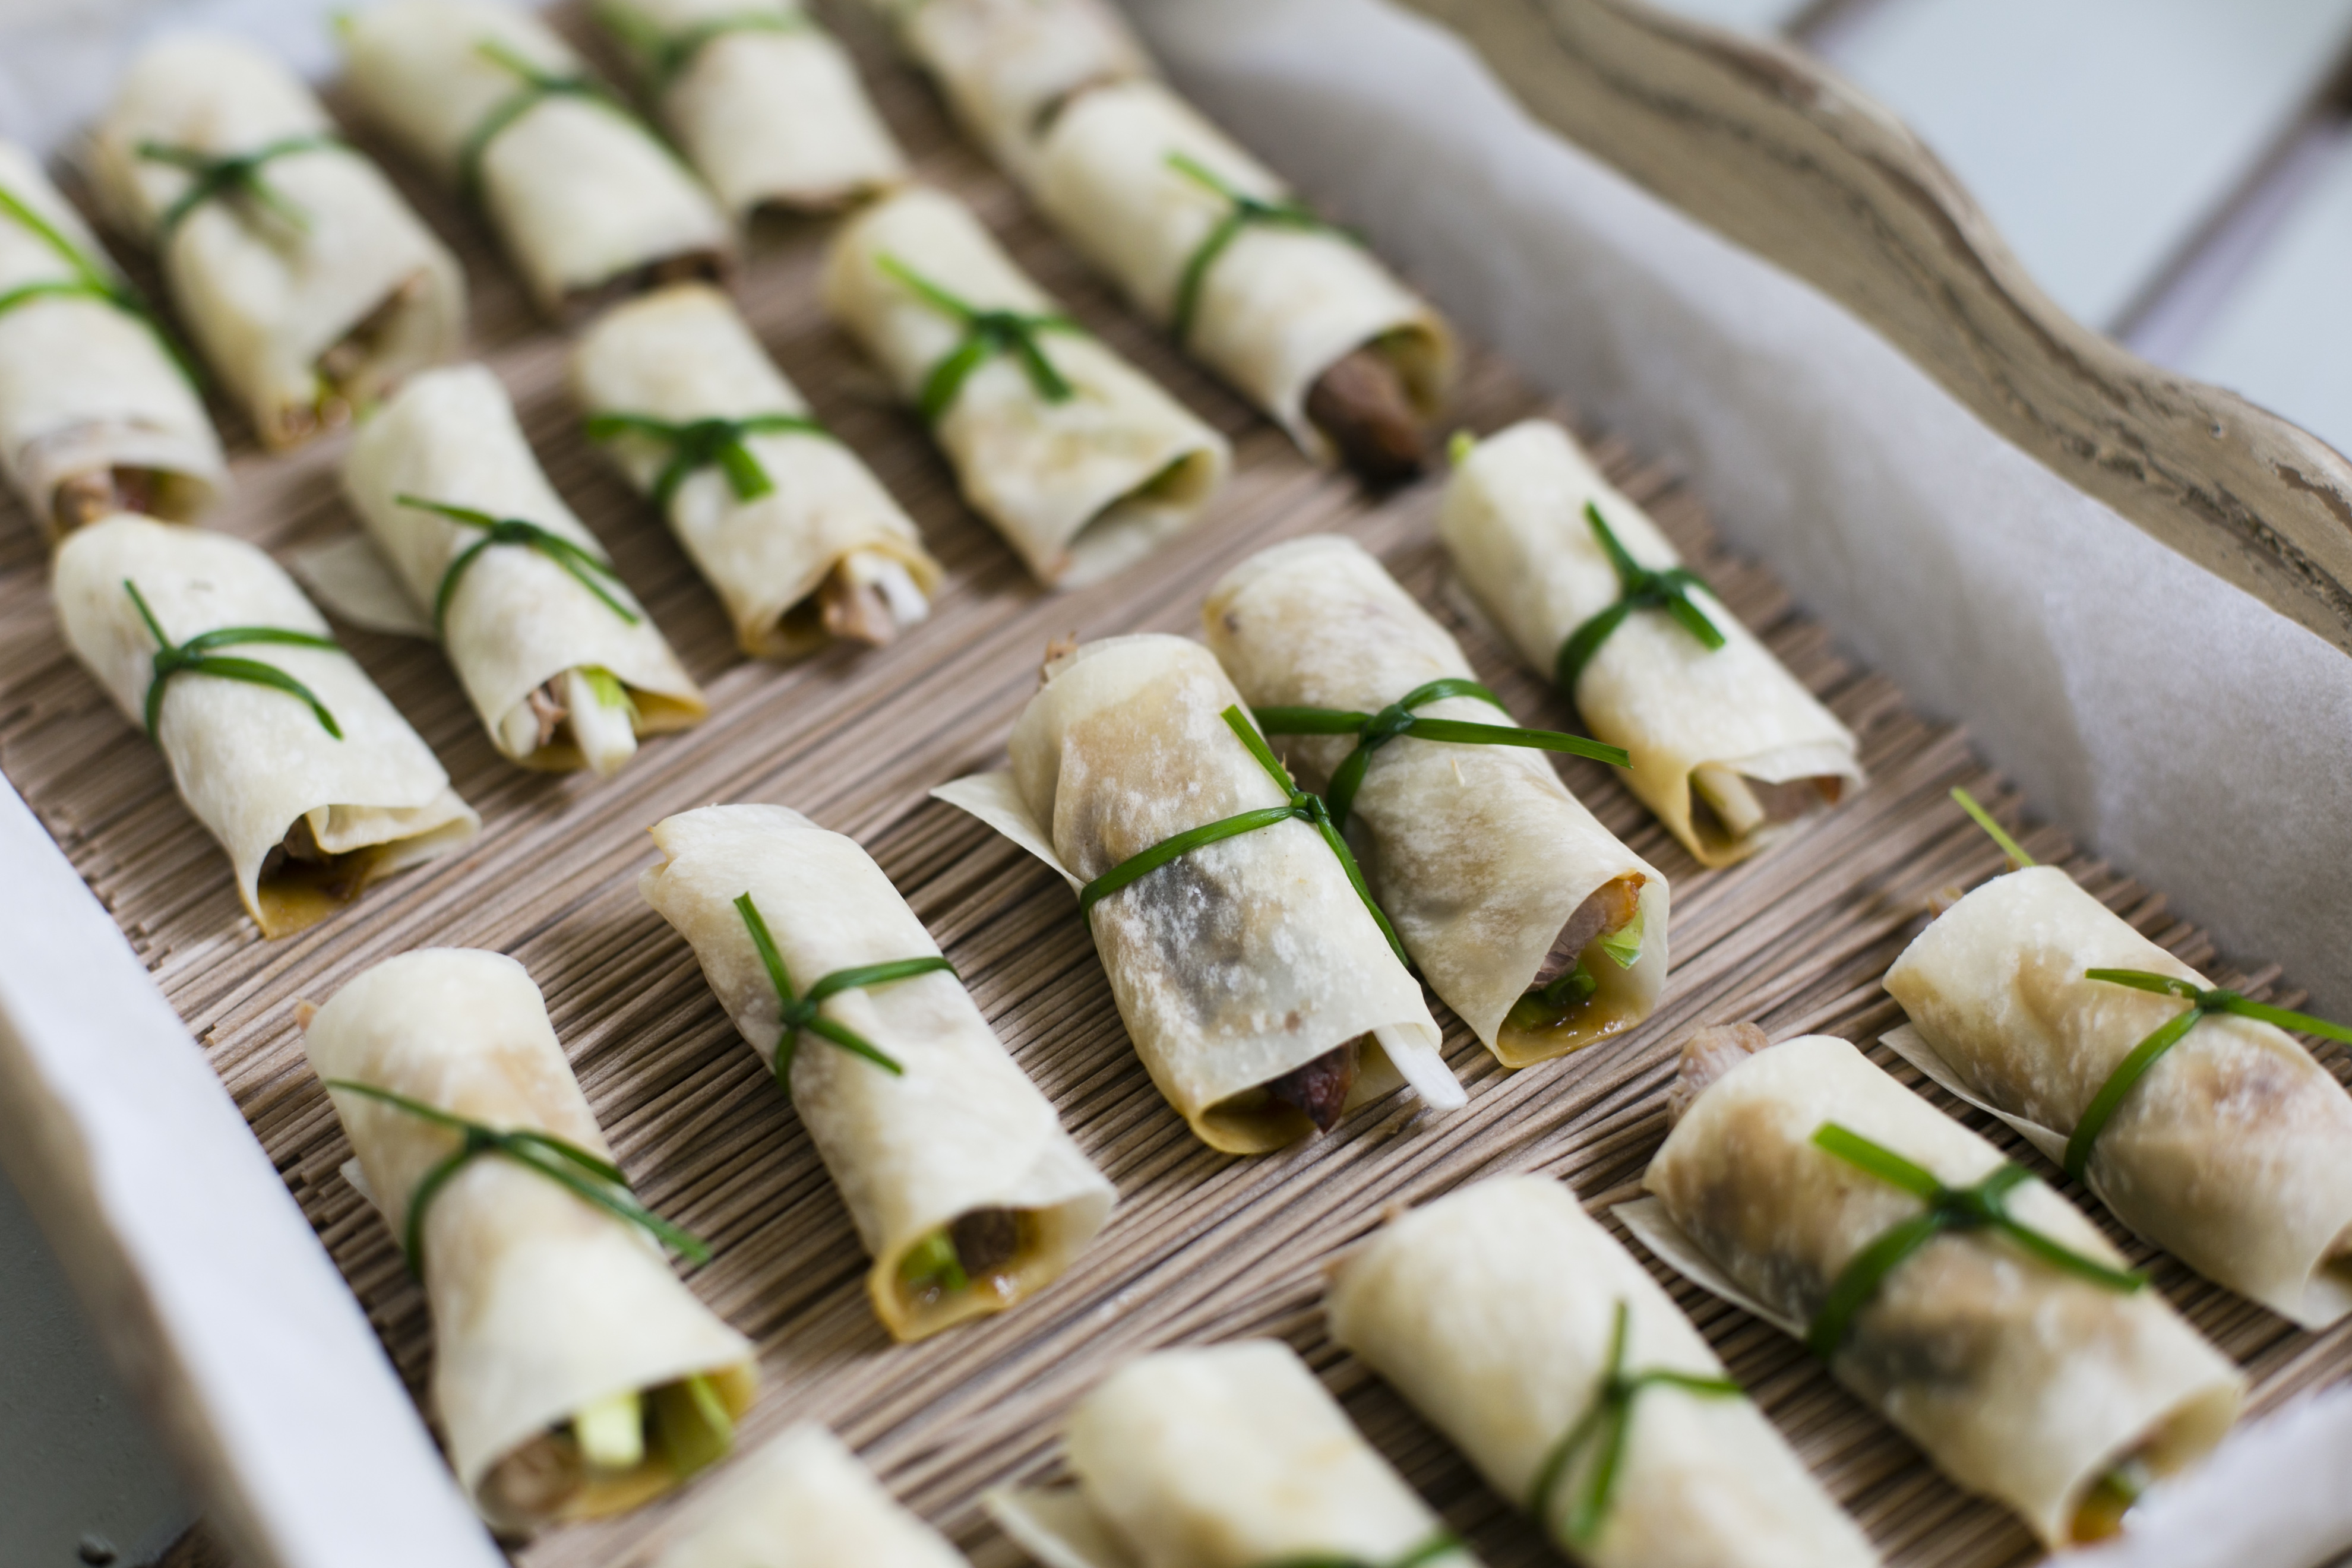 Fashionable canap s for a fashionable shop catering by for Asian canape ideas